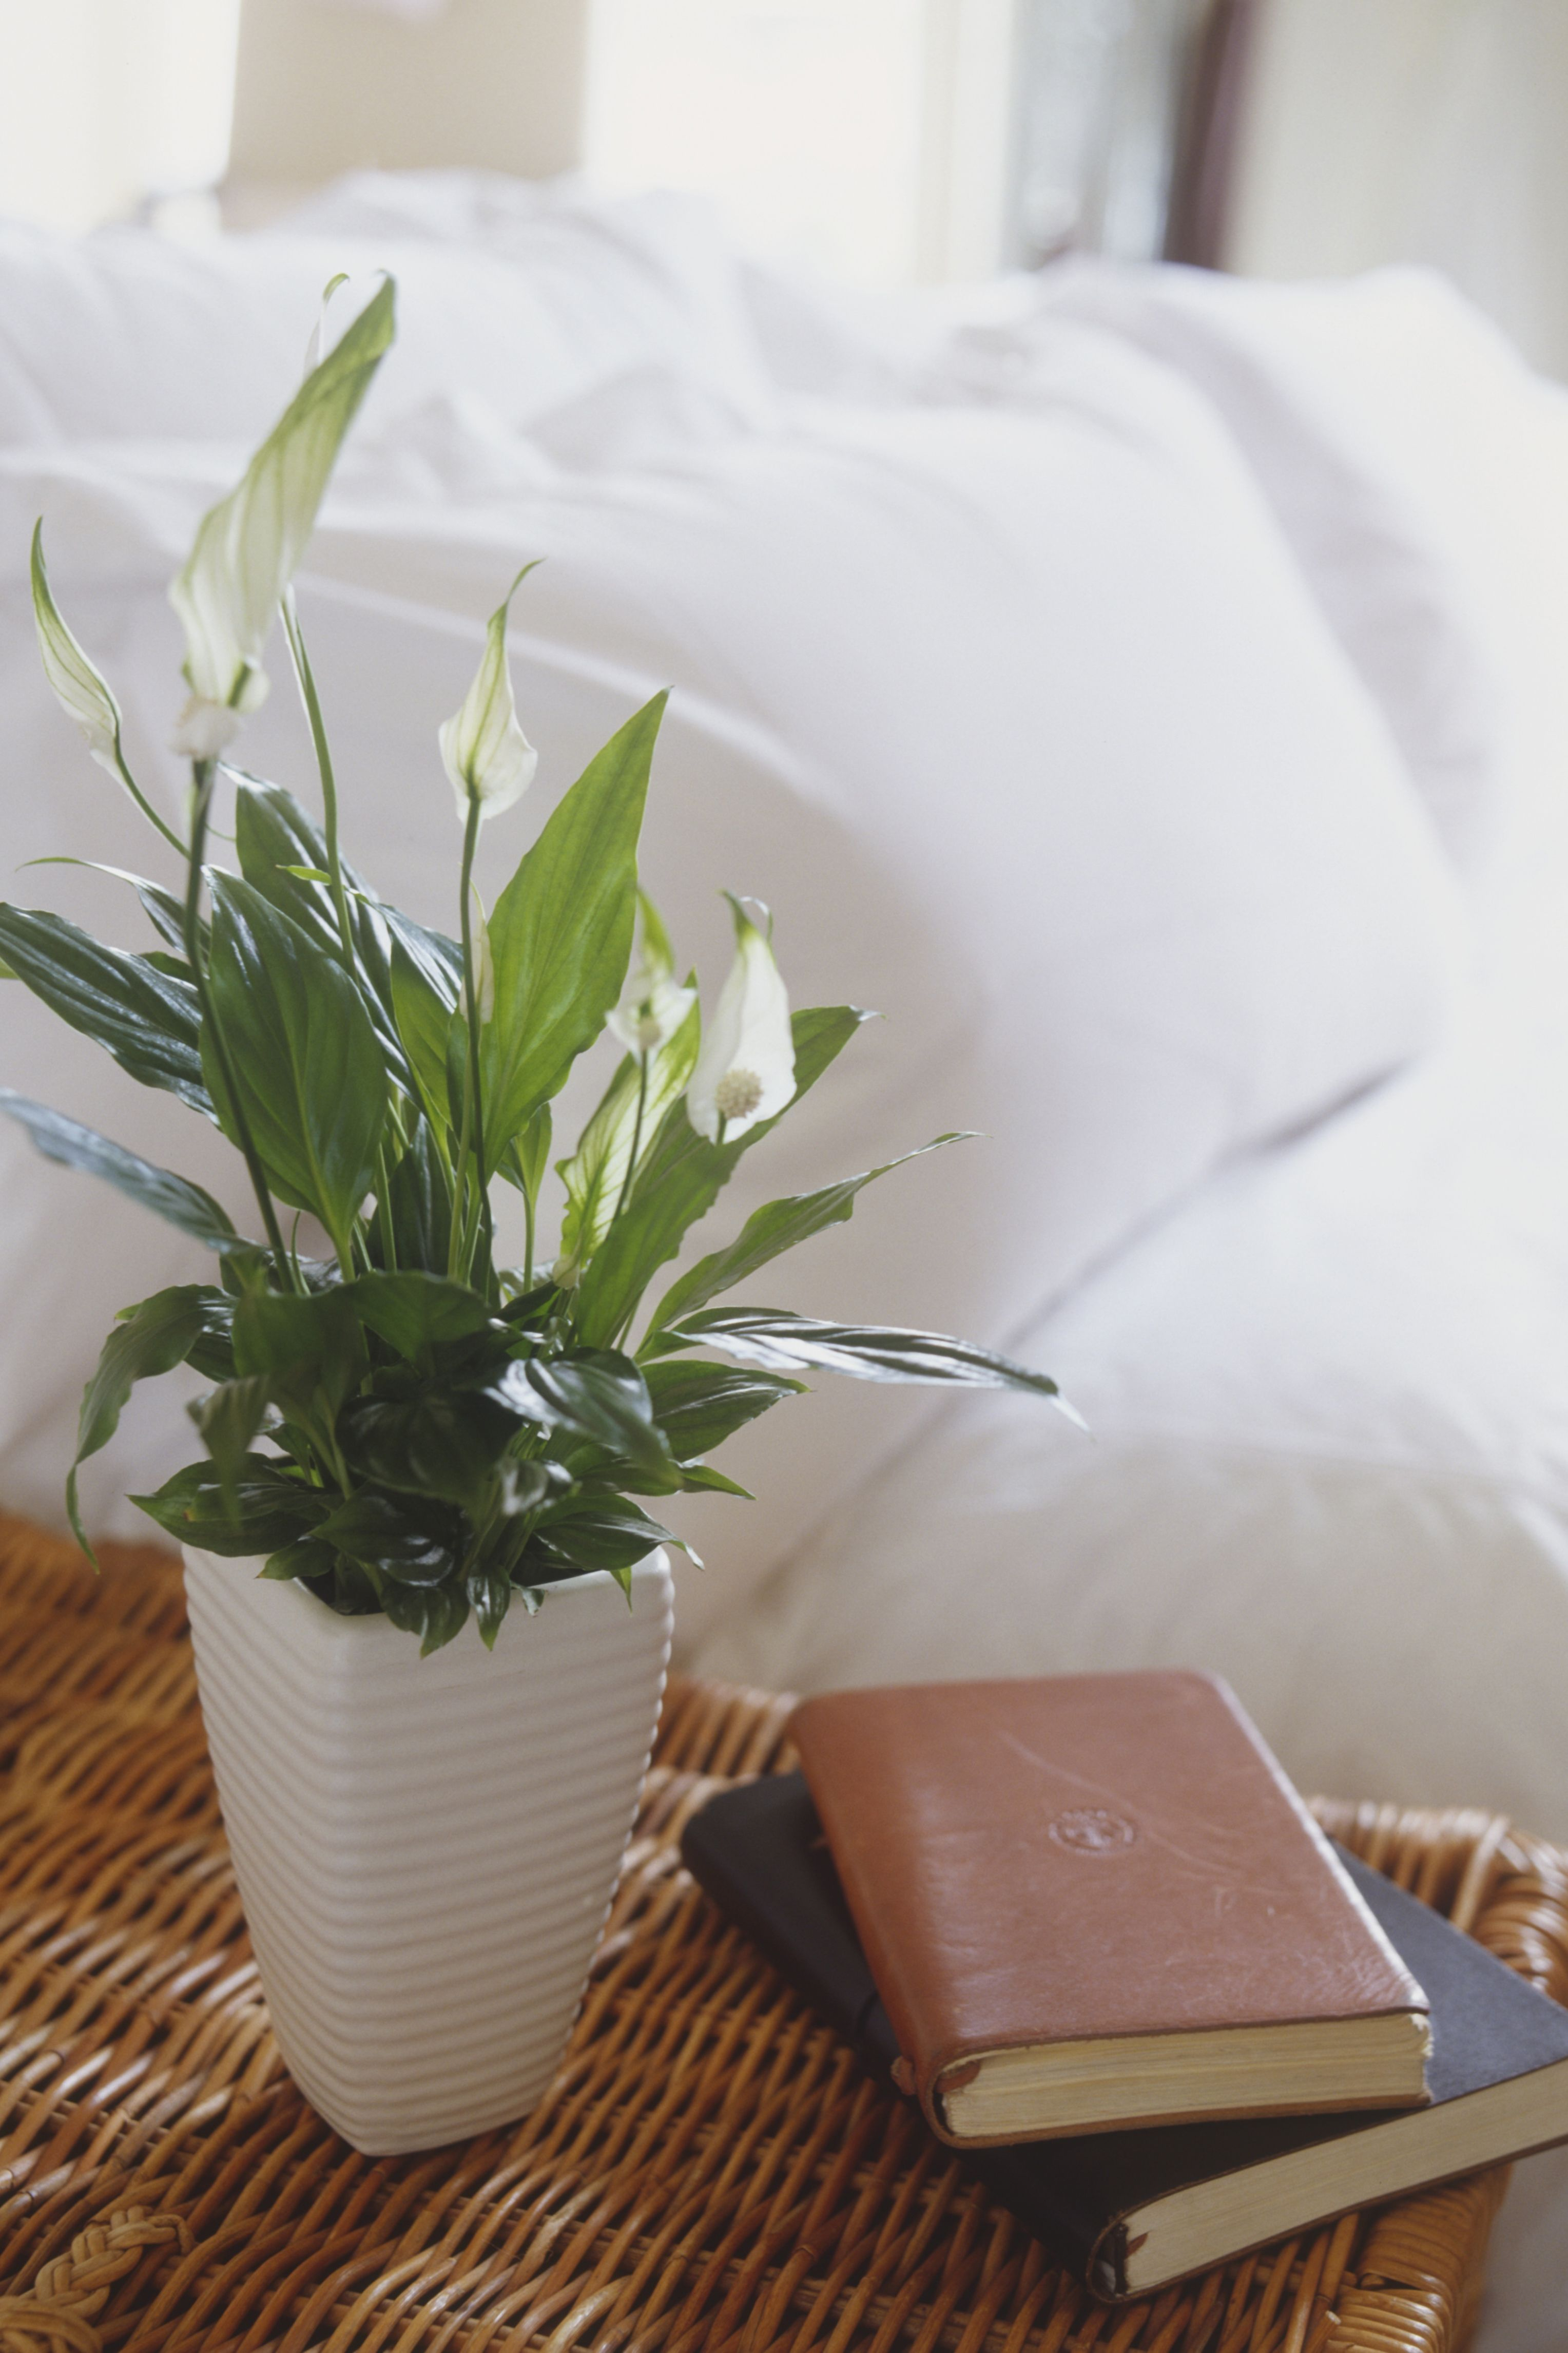 The 25 Indoor Plants You Canu0027t Kill